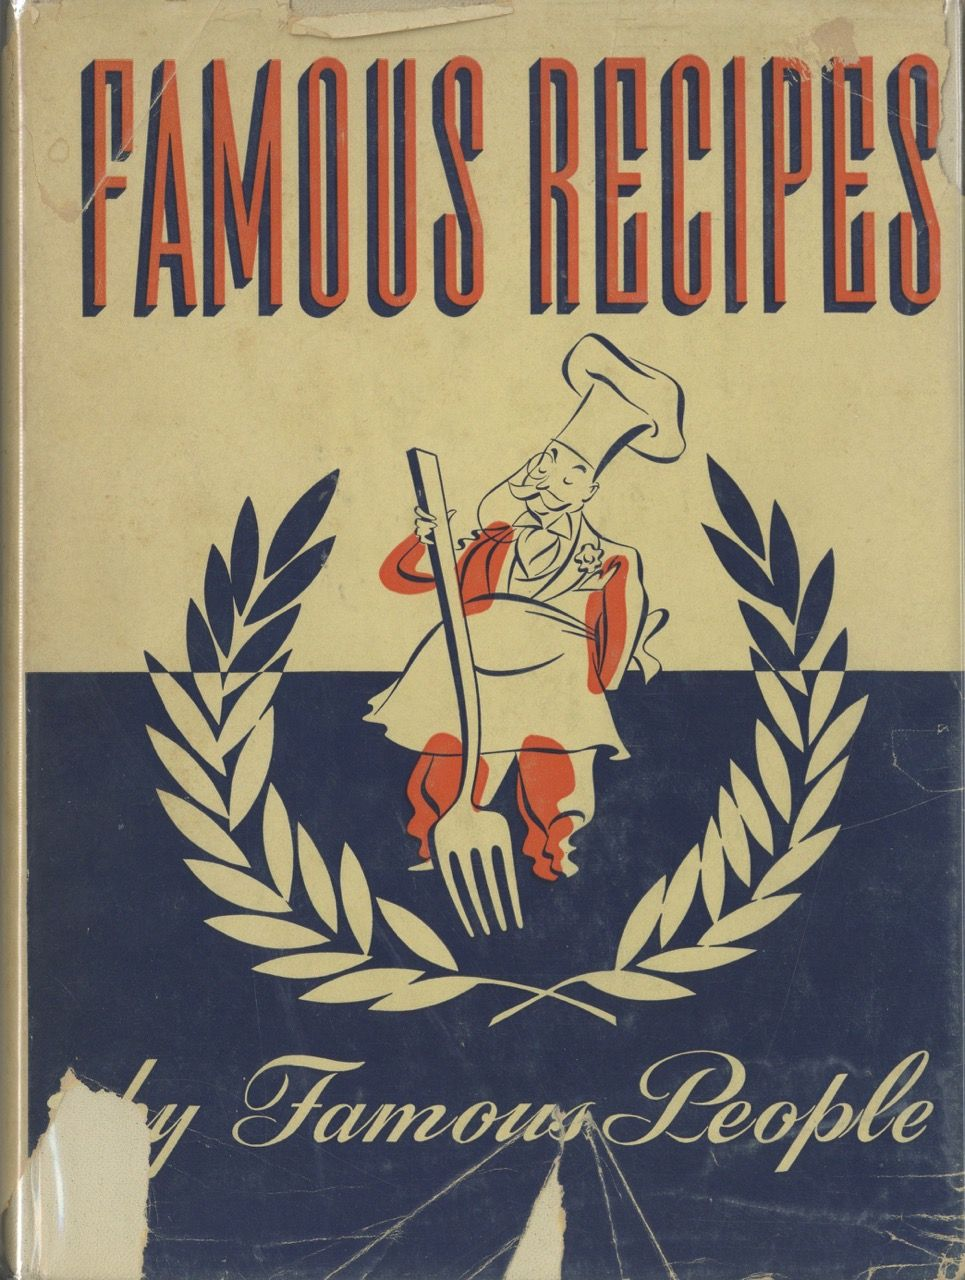 Famous Recipes By Famous People. Compiled and edited by Herbert Cerwin. Illustrated by Sinclair Ross. Robinson Jeffers John Steinbeck, Rube Goldberg, Sinclair Lewis, Sherwood Anderson, William Beebe, Gertrude Stein, Disney, Walt, Edgar Rice Burroughs, H. L. Mencken, Zane Grey, Sunset Magazine in Cooperation, Hotel Del Monte, Herbert Cerwin, compiler and.